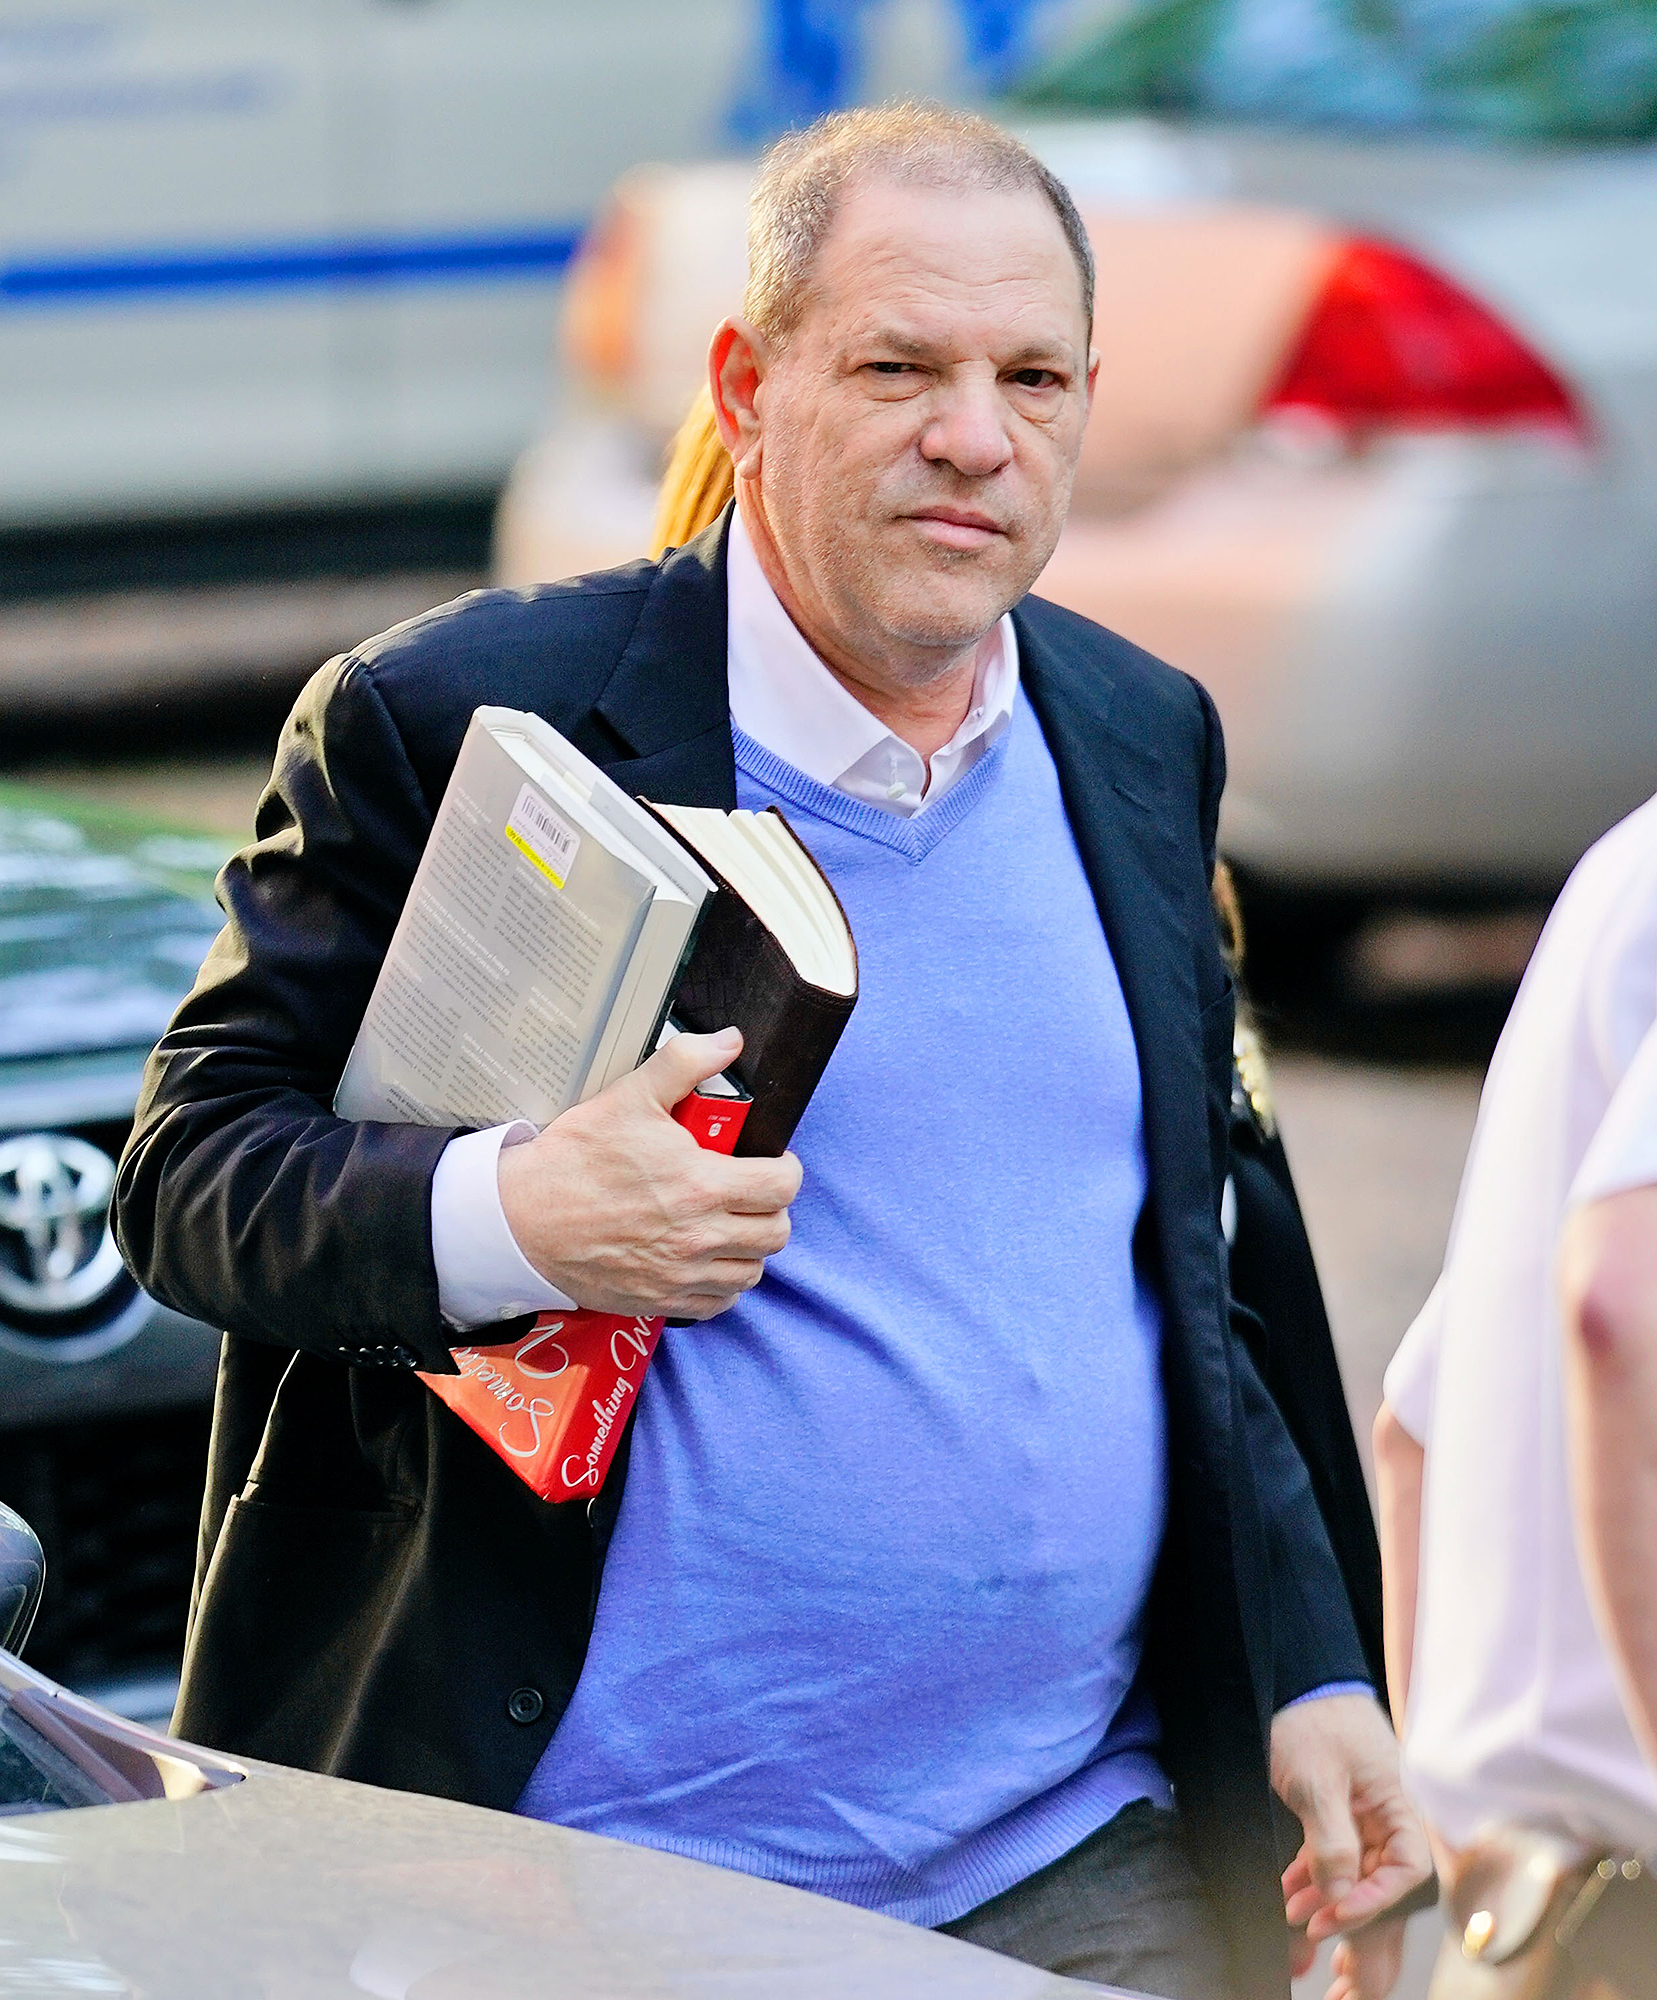 Harvey Weinstein arrives at First Precinct in New York to turn himself in